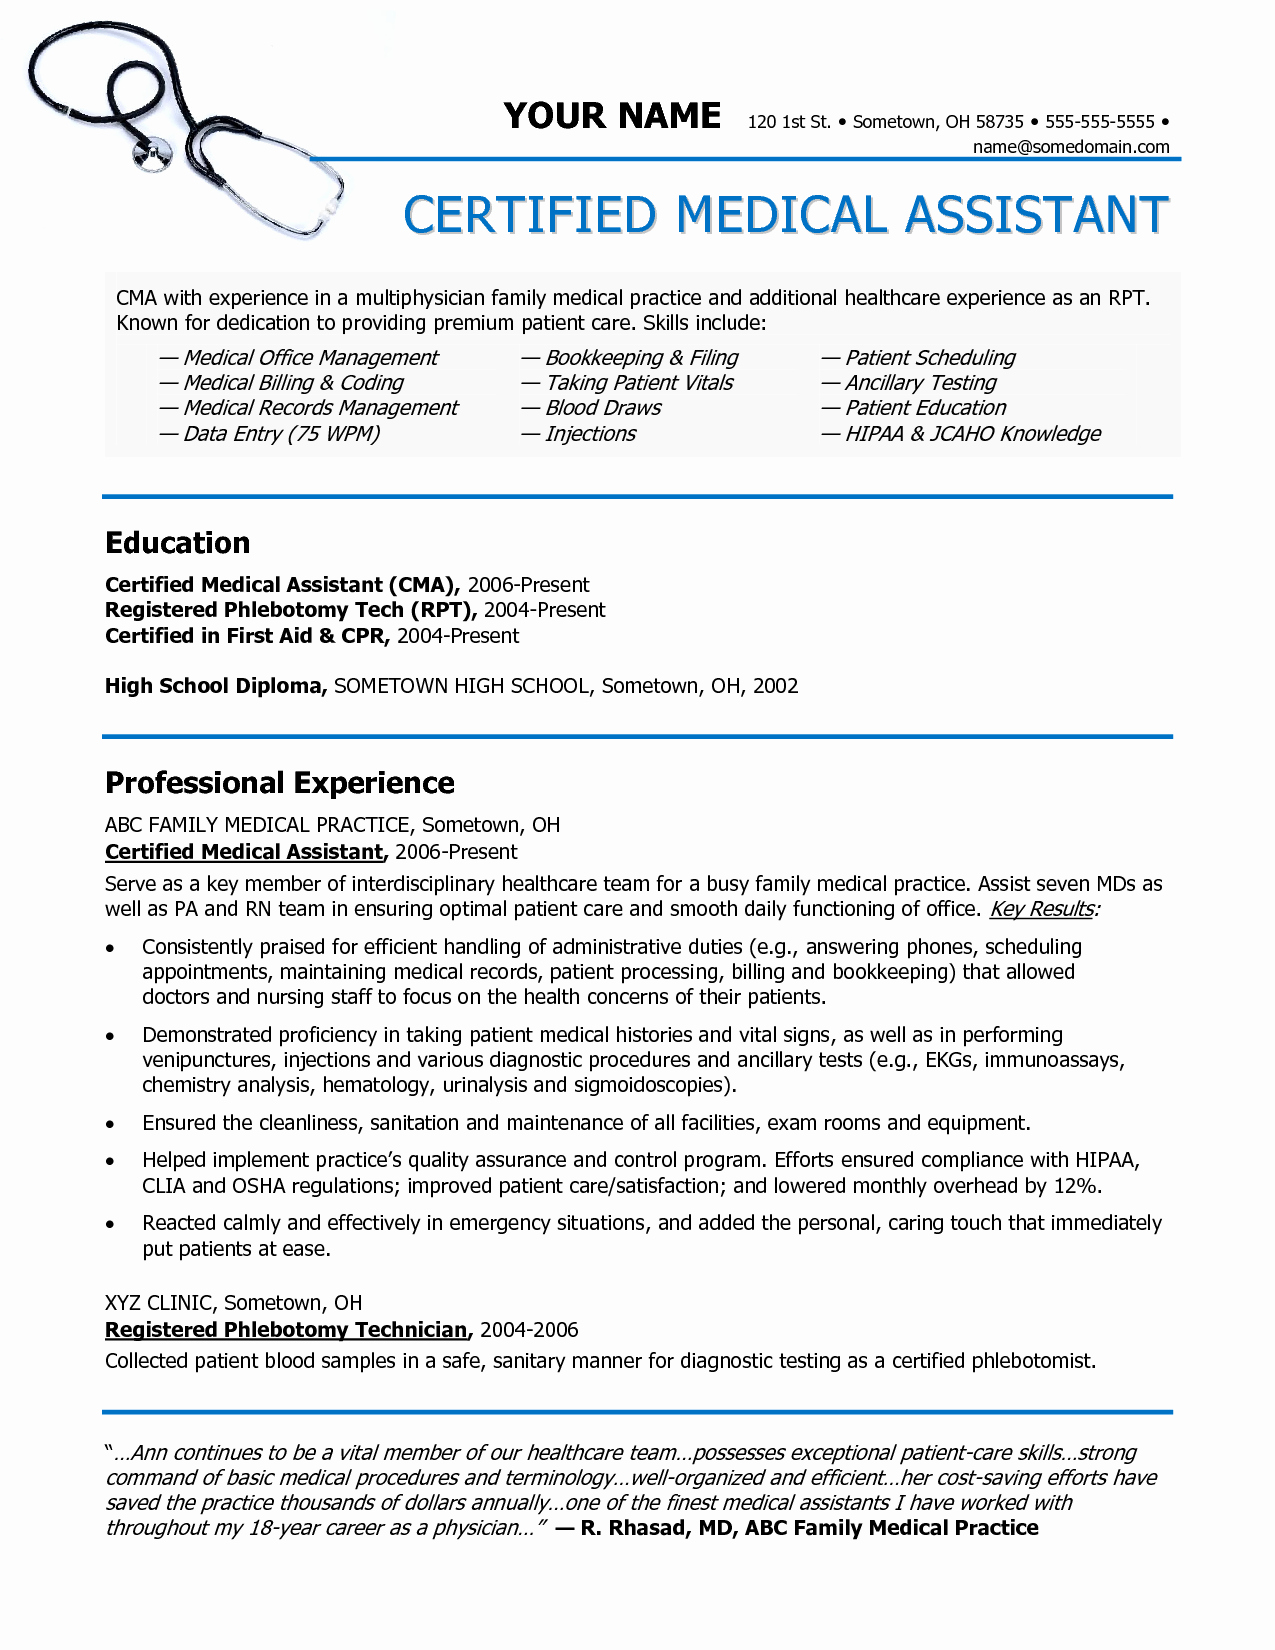 Medical assistant Skills Resume – Resume Template Ideas